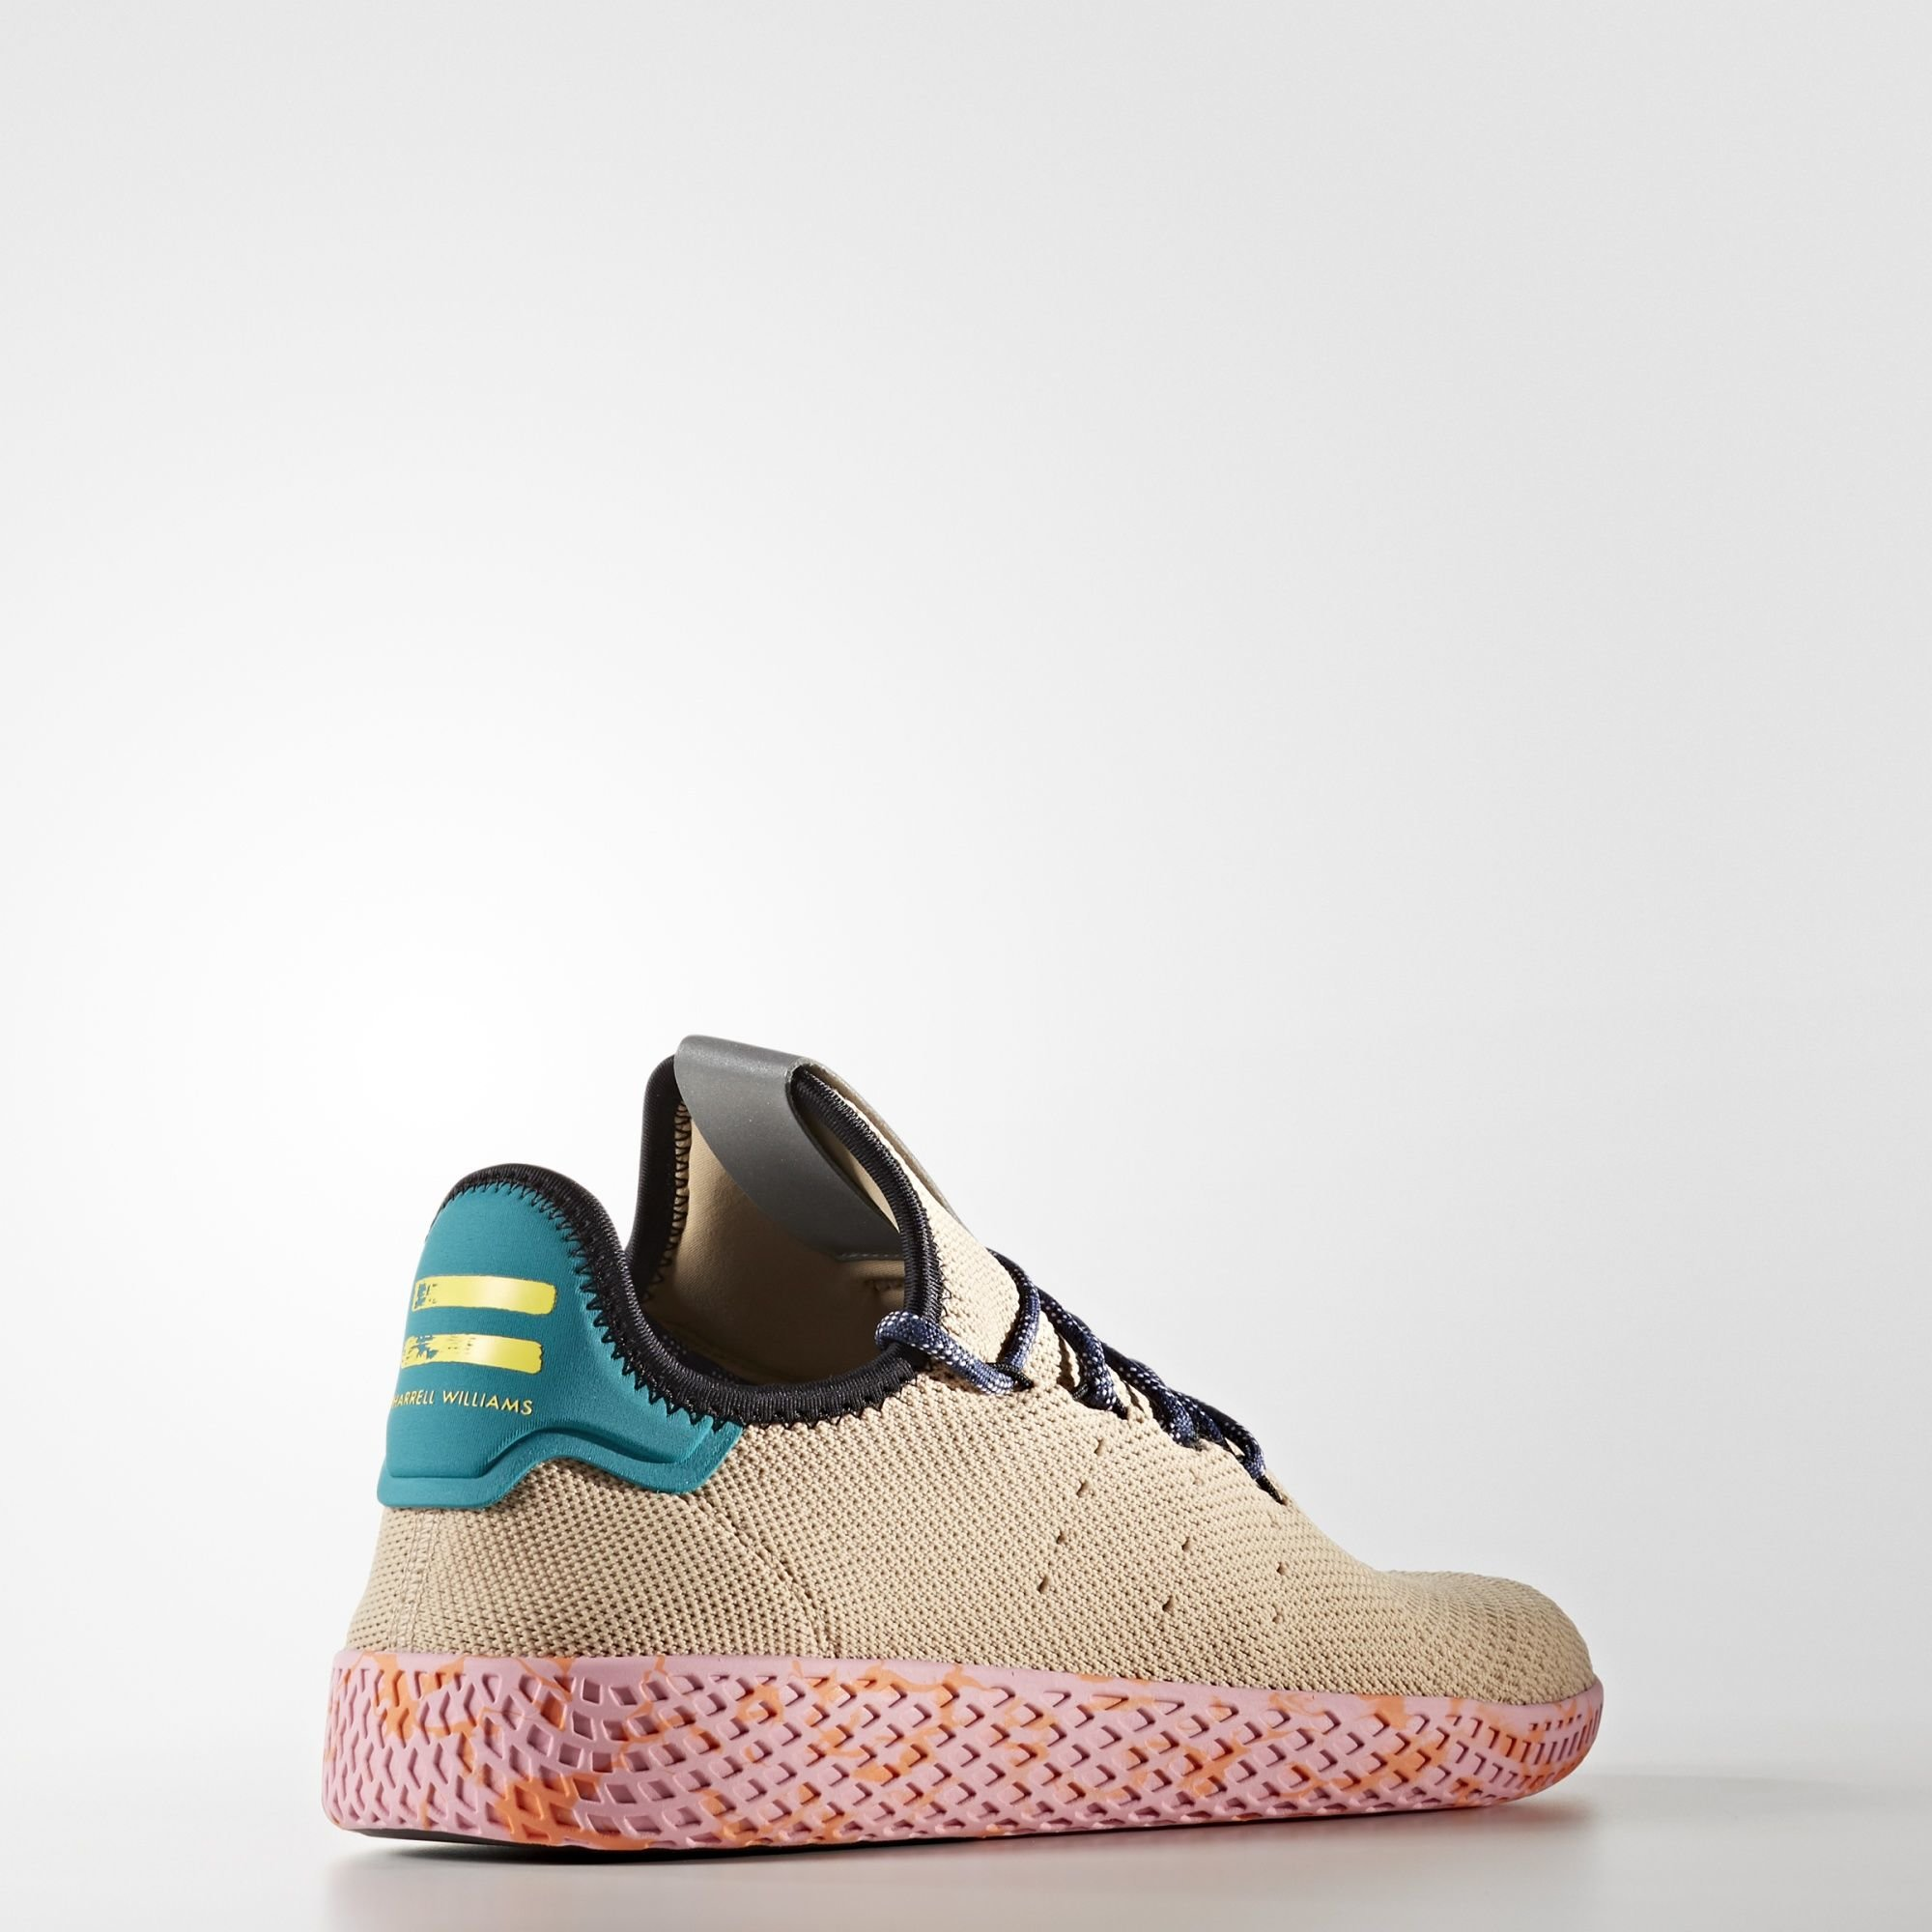 Pharrell x adidas Tennis HU Tan (BY2672)